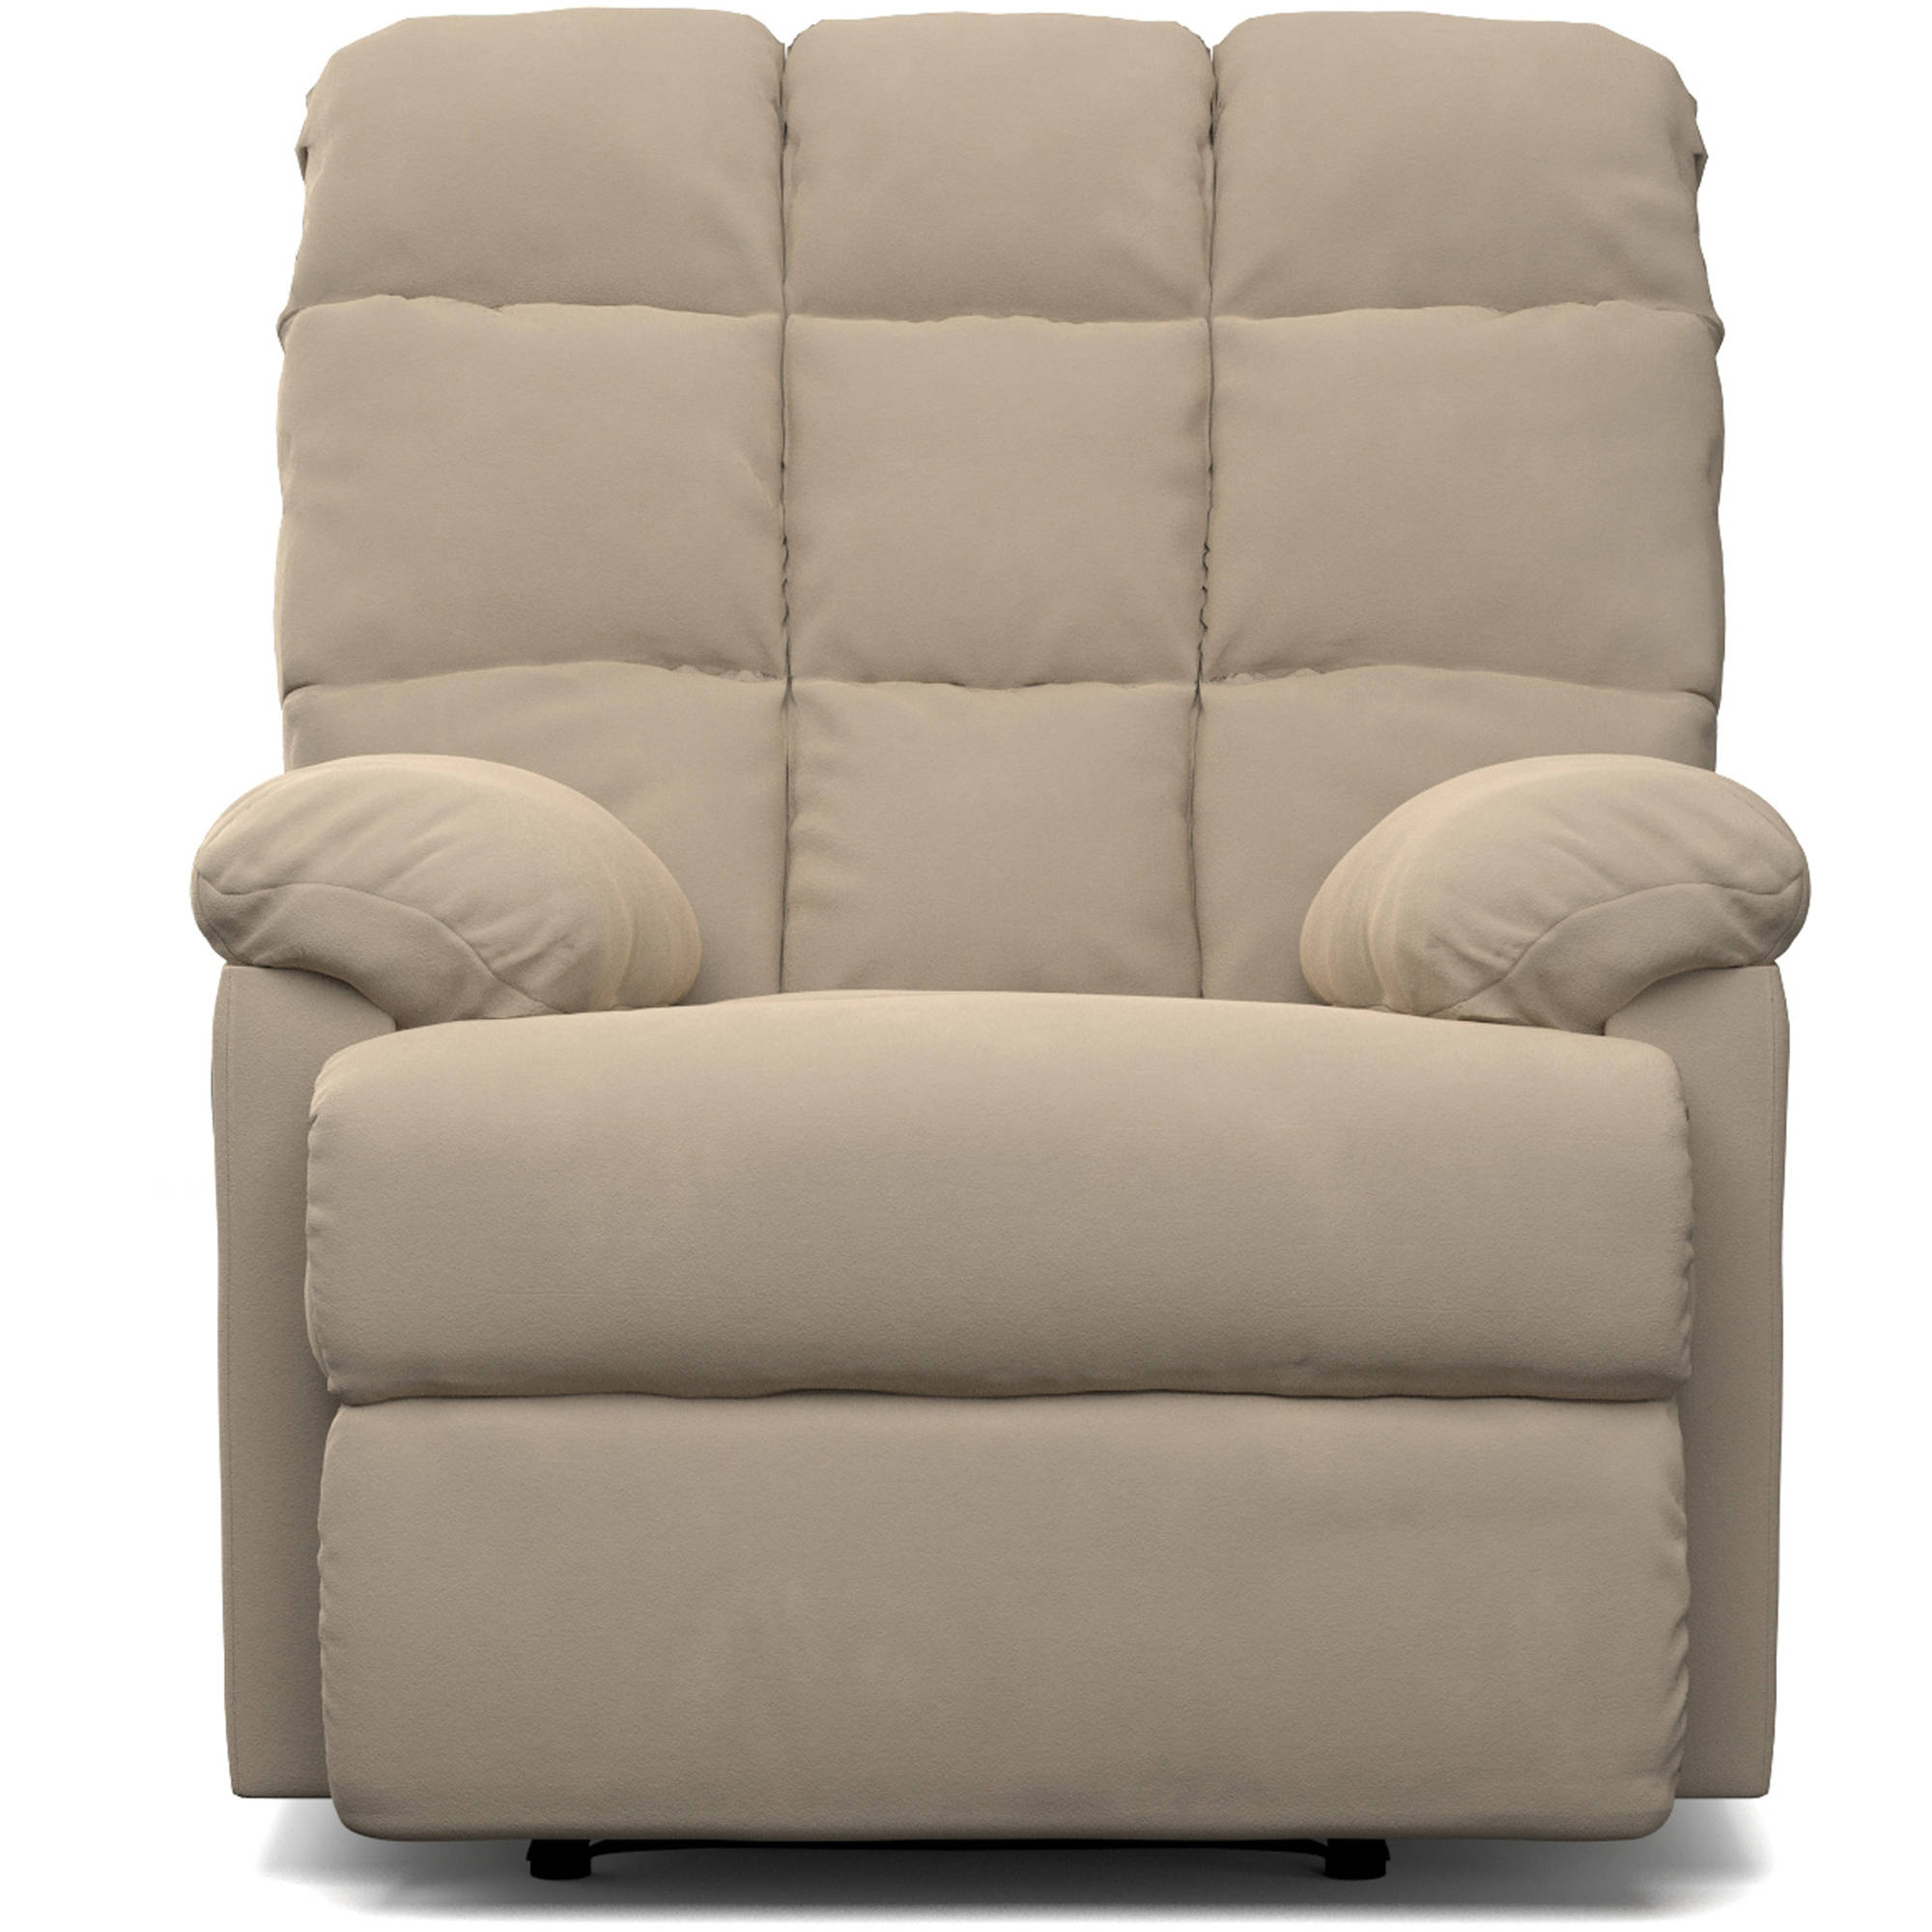 Mainstays Baja Wall Hugger Microfiber Biscuit Back Recliner Chair, Multiple  Colors Image 2 Of 6